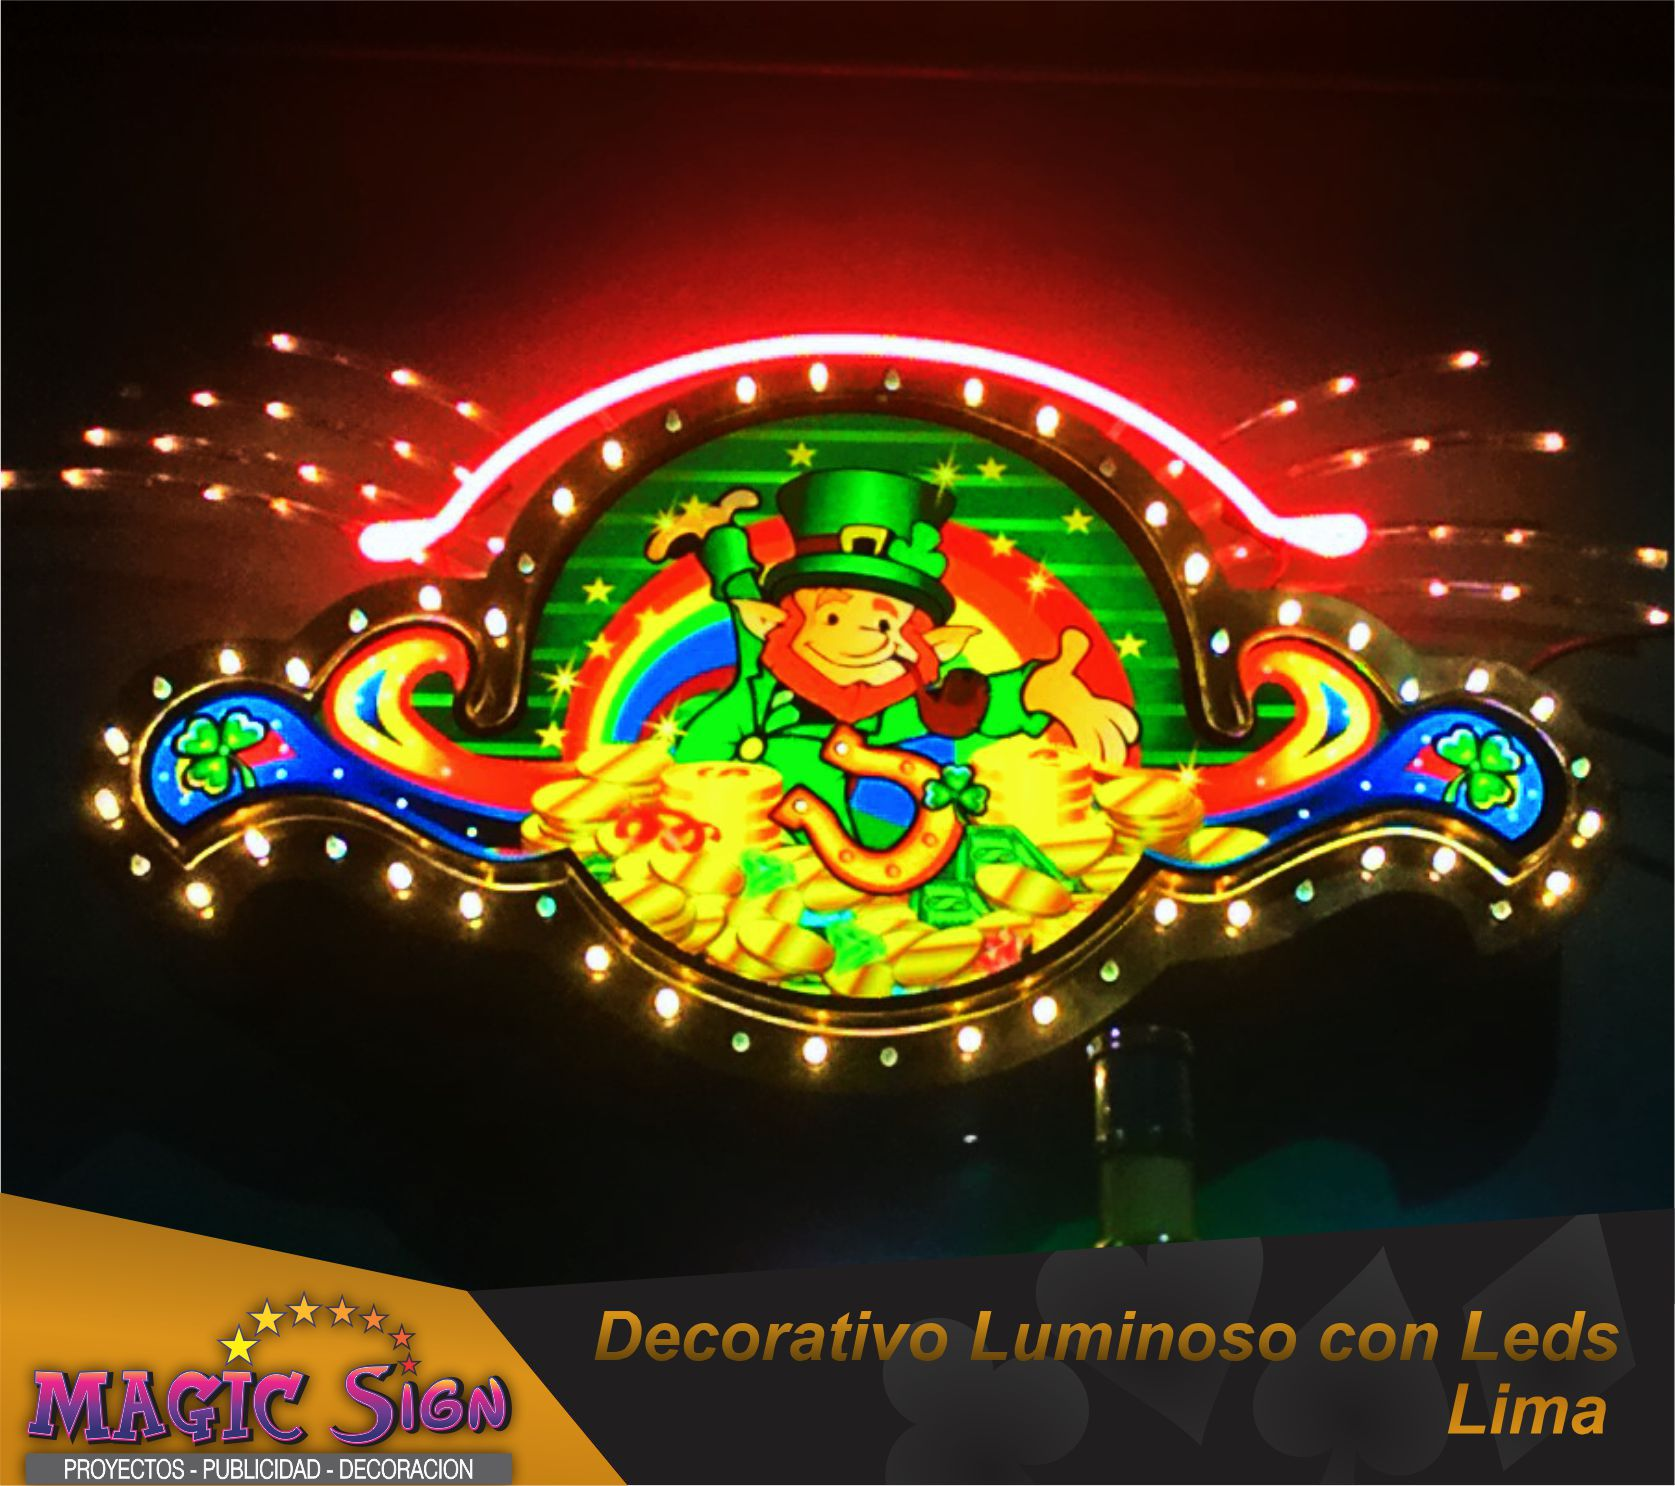 DECORATIVO LUMINOSO con led